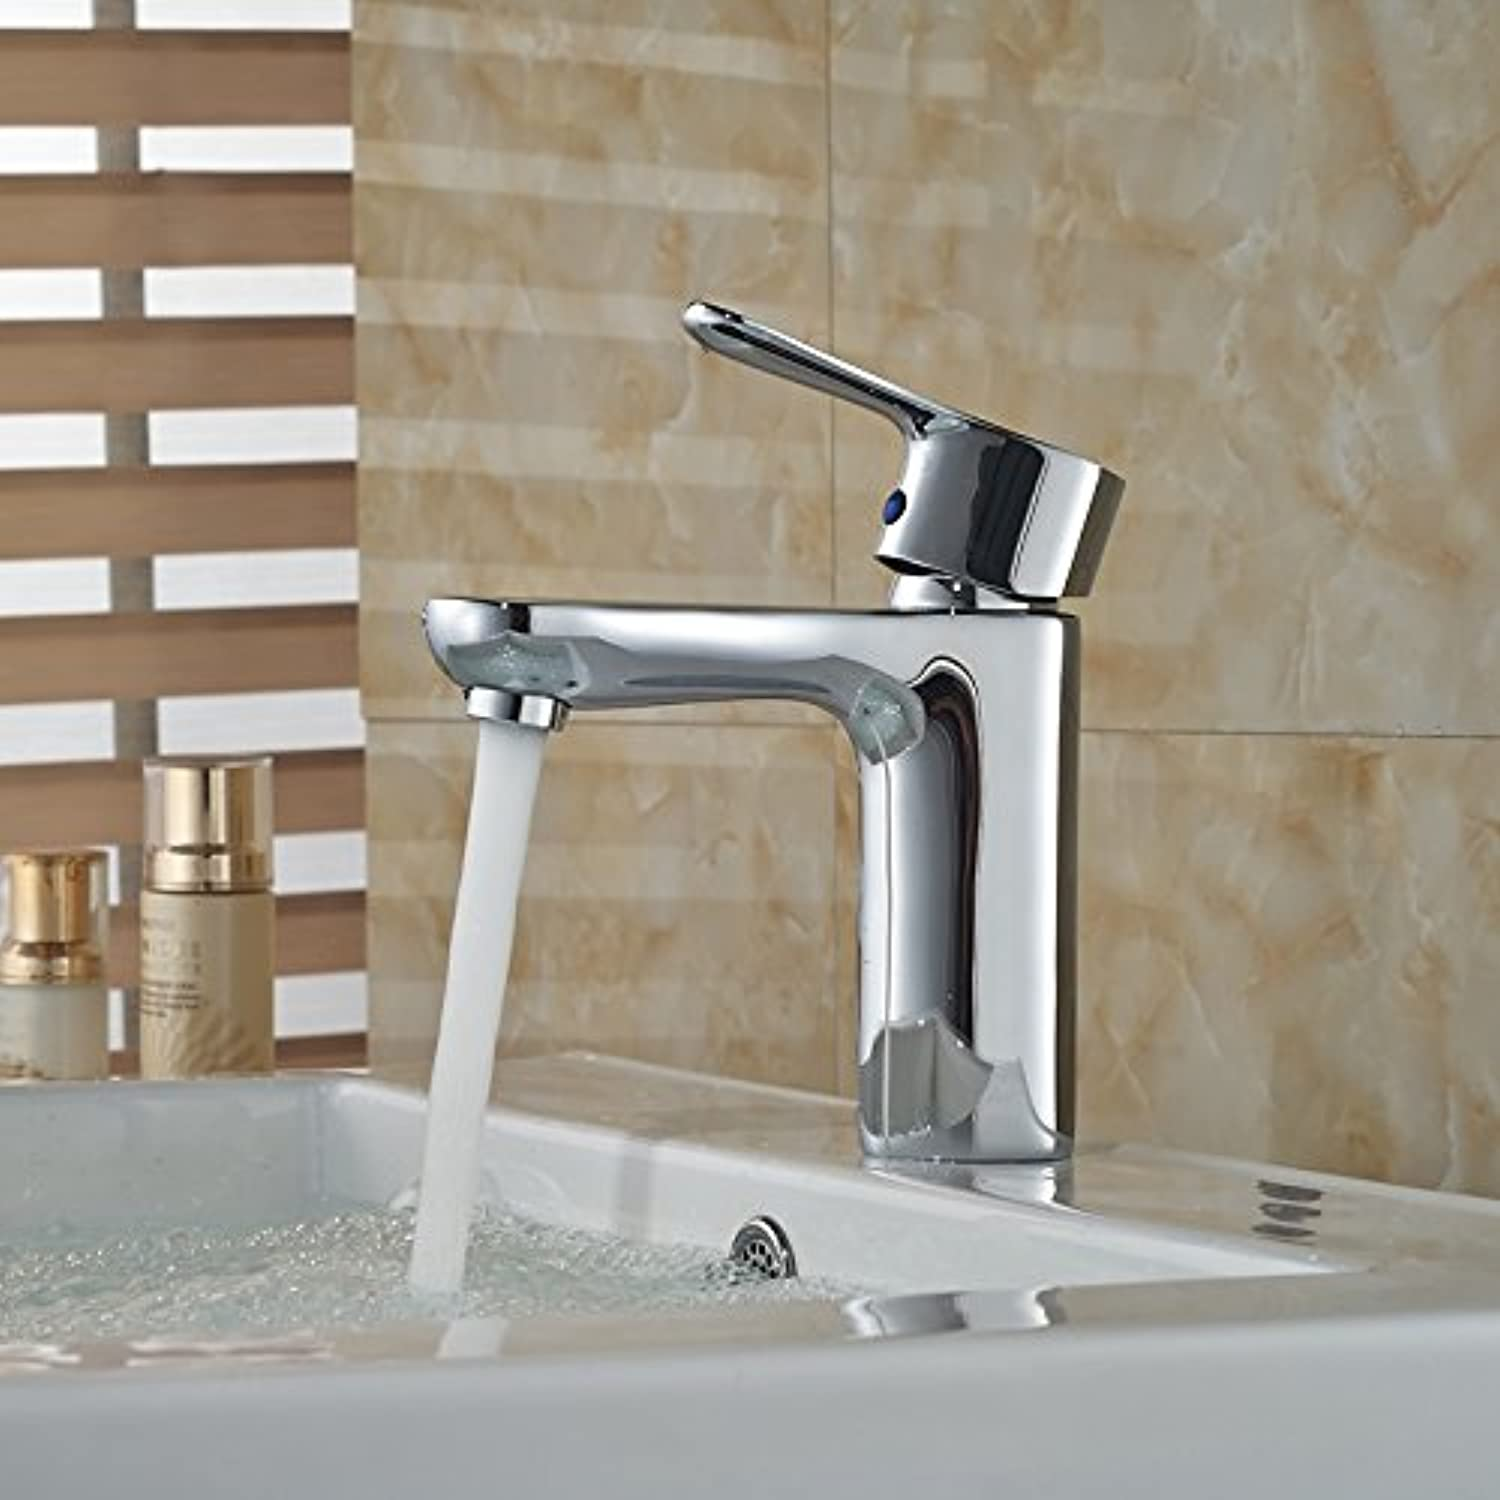 U-Enjoy Wholesale and Retail Top Quality Brass Sink Faucet Single Lever Hot and Cold Water Mixer Taps (Free Shipping)